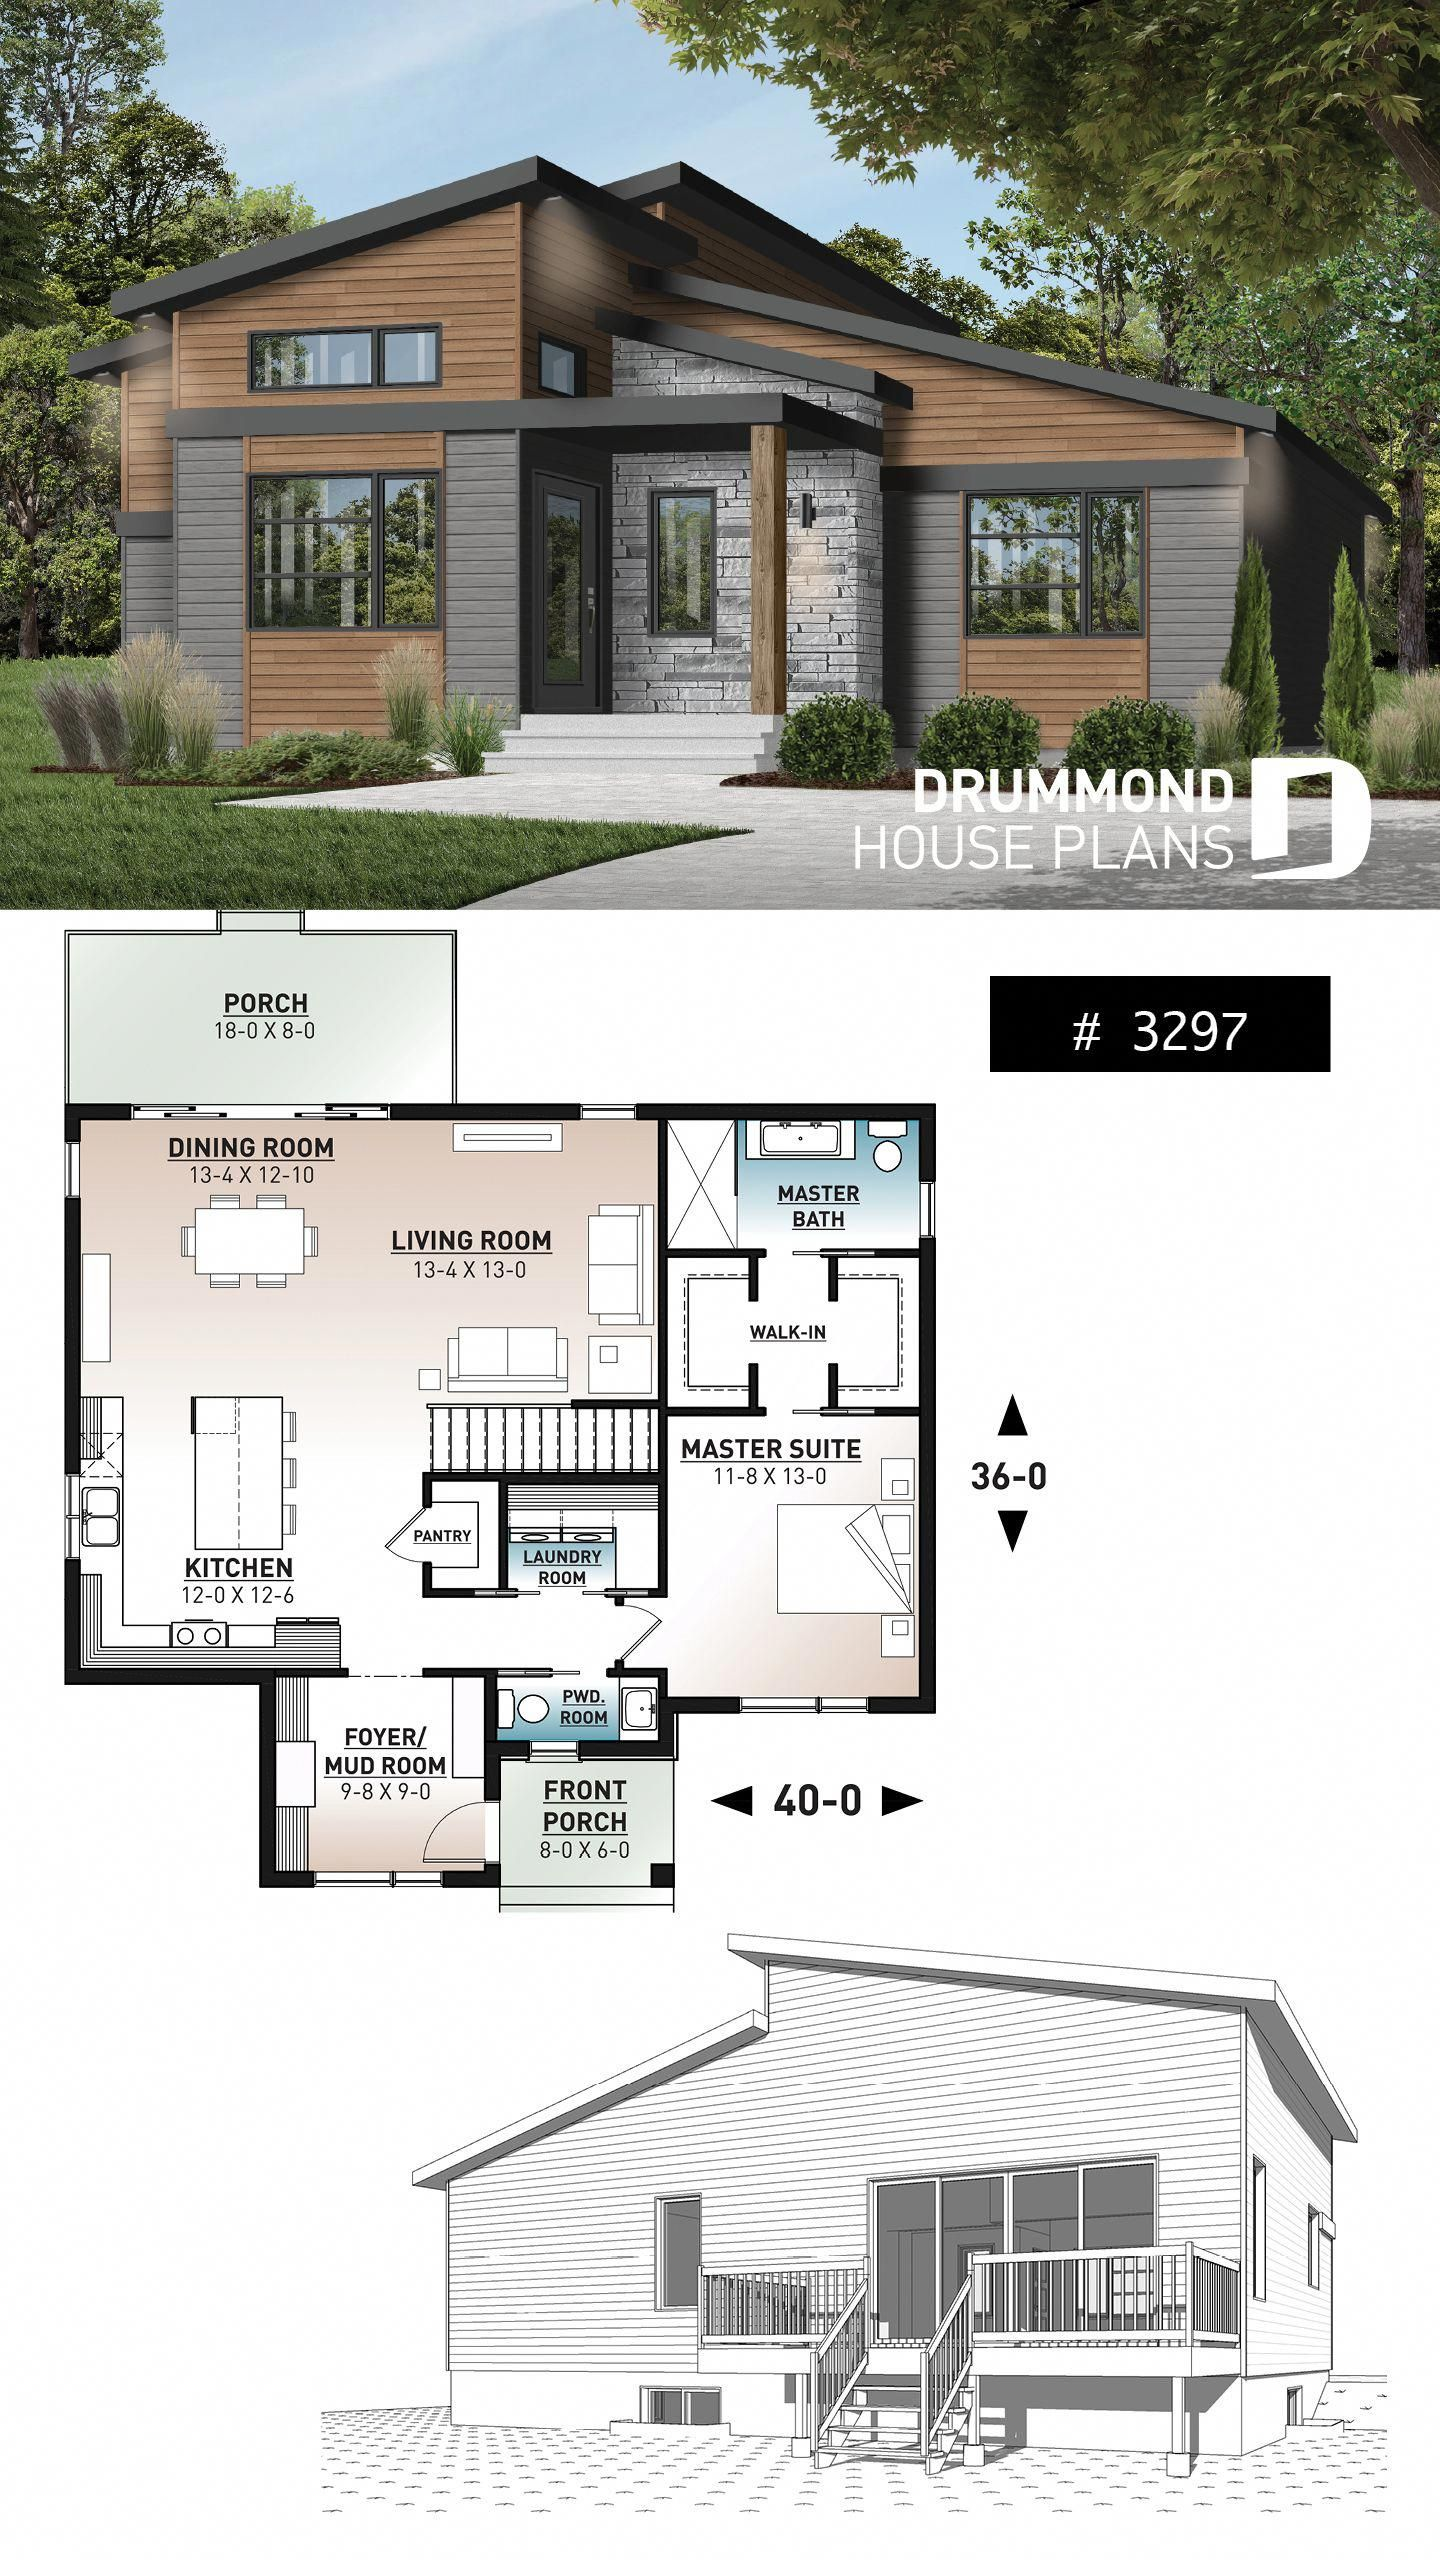 1 Bedroom Modern Mid Century House Plan With Open Floor Plan Economical Home Unfinished Daylig Modern House Floor Plans Basement House Plans Sims House Plans